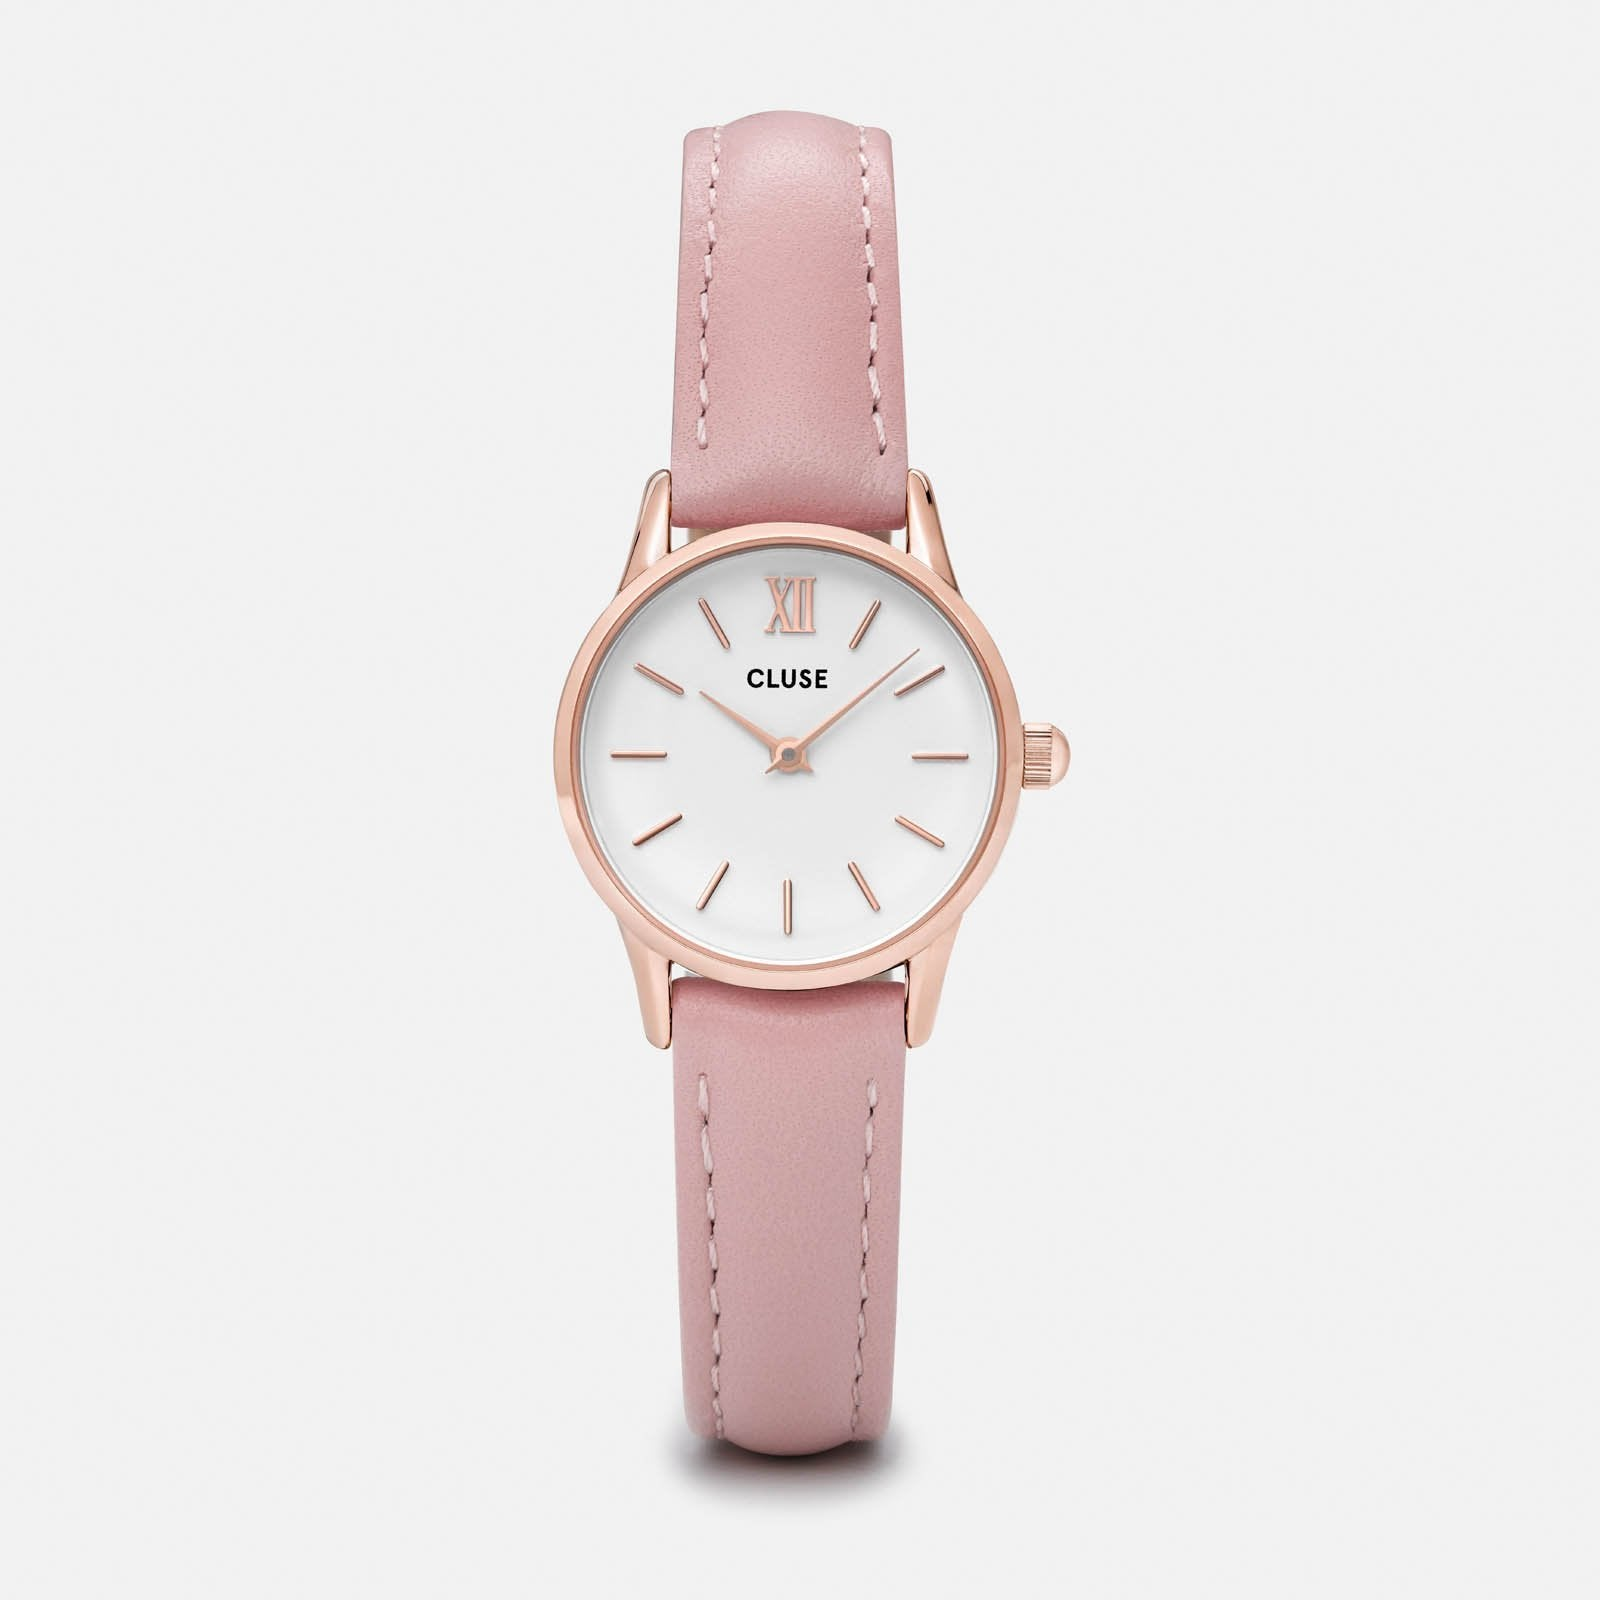 51986052c La Vedette Rose Gold White/Pink CL50010 - CLUSE official store